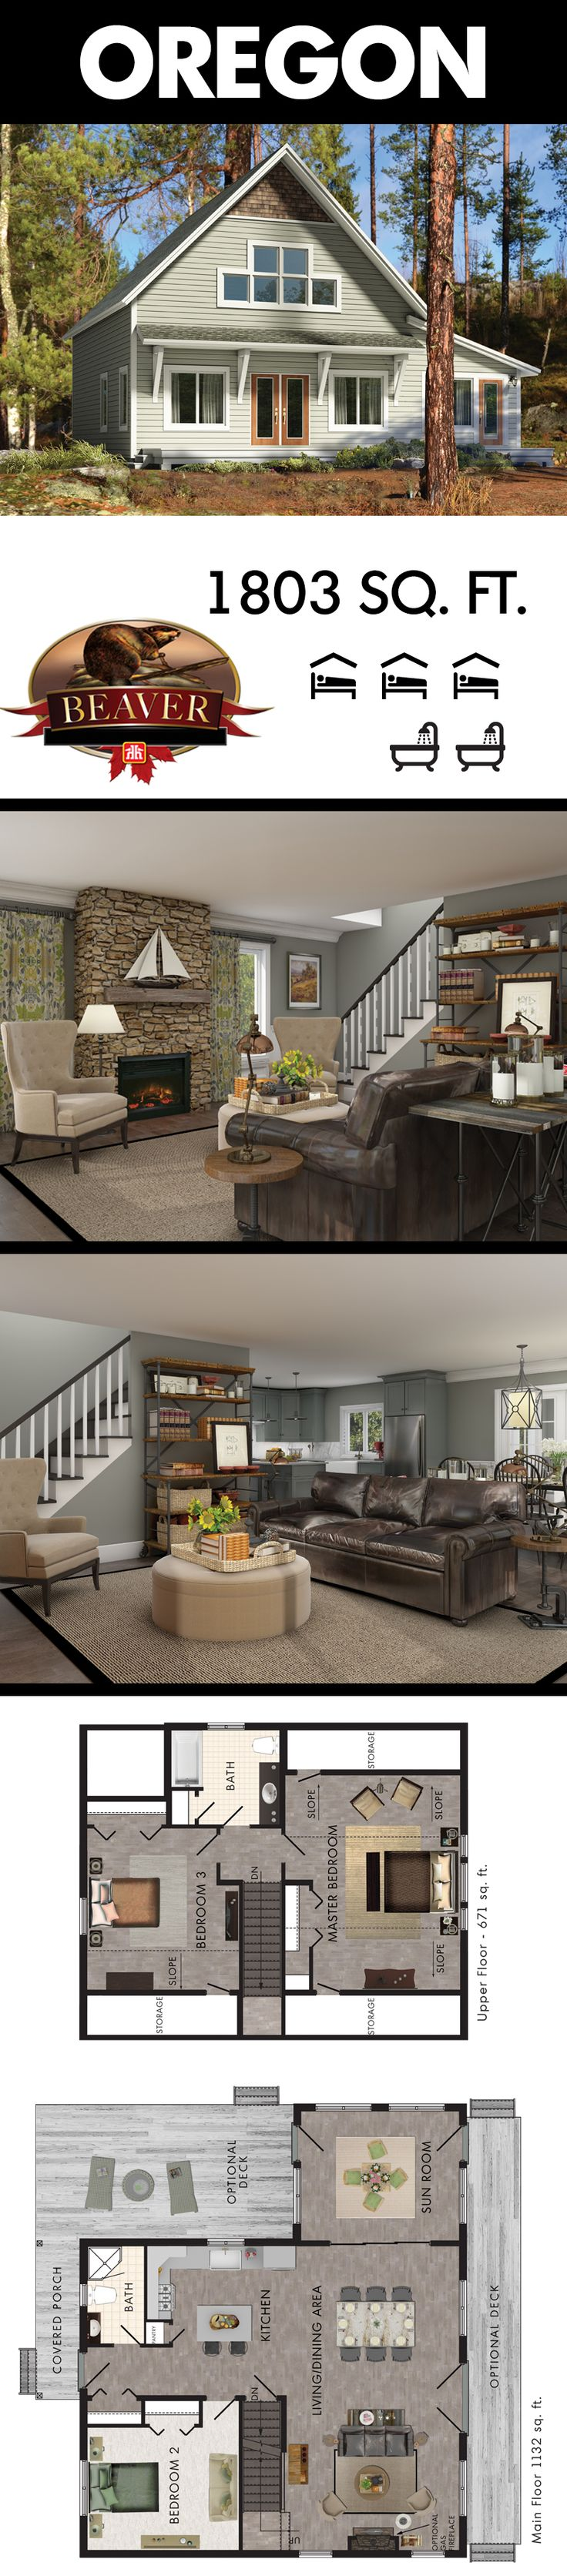 551 best home images on pinterest home plans house blueprints and